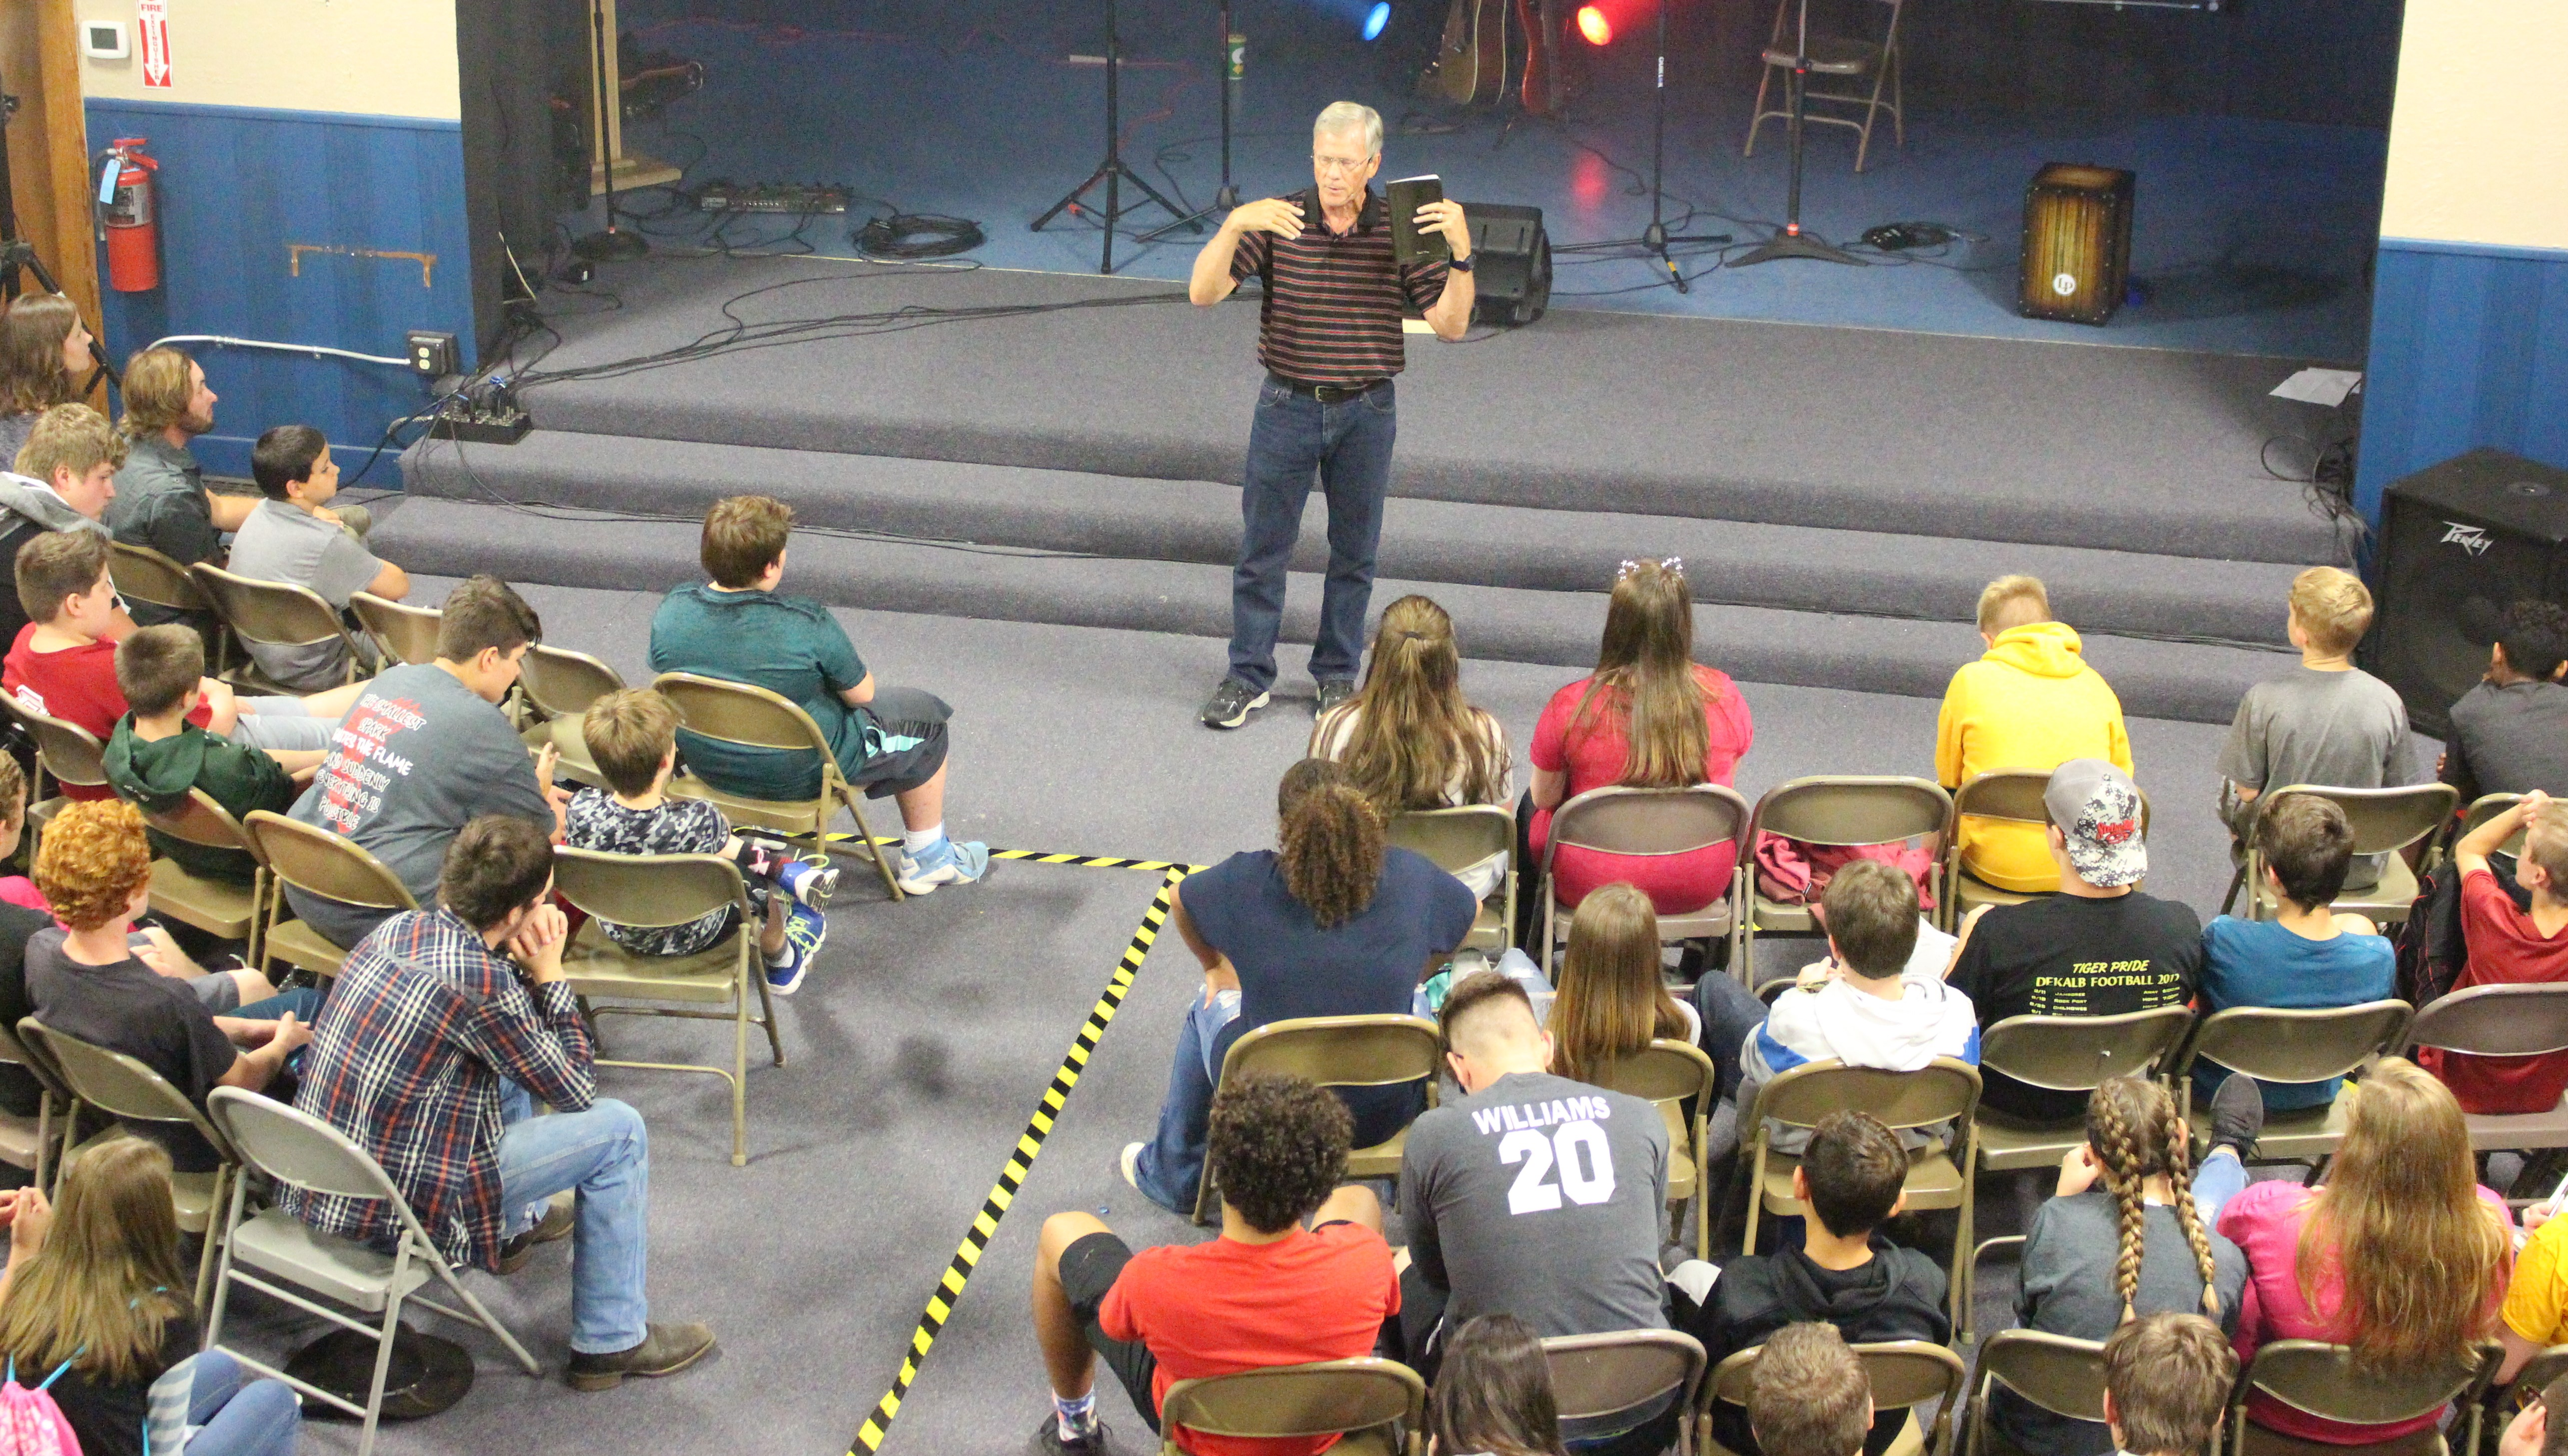 Dave preaching at event